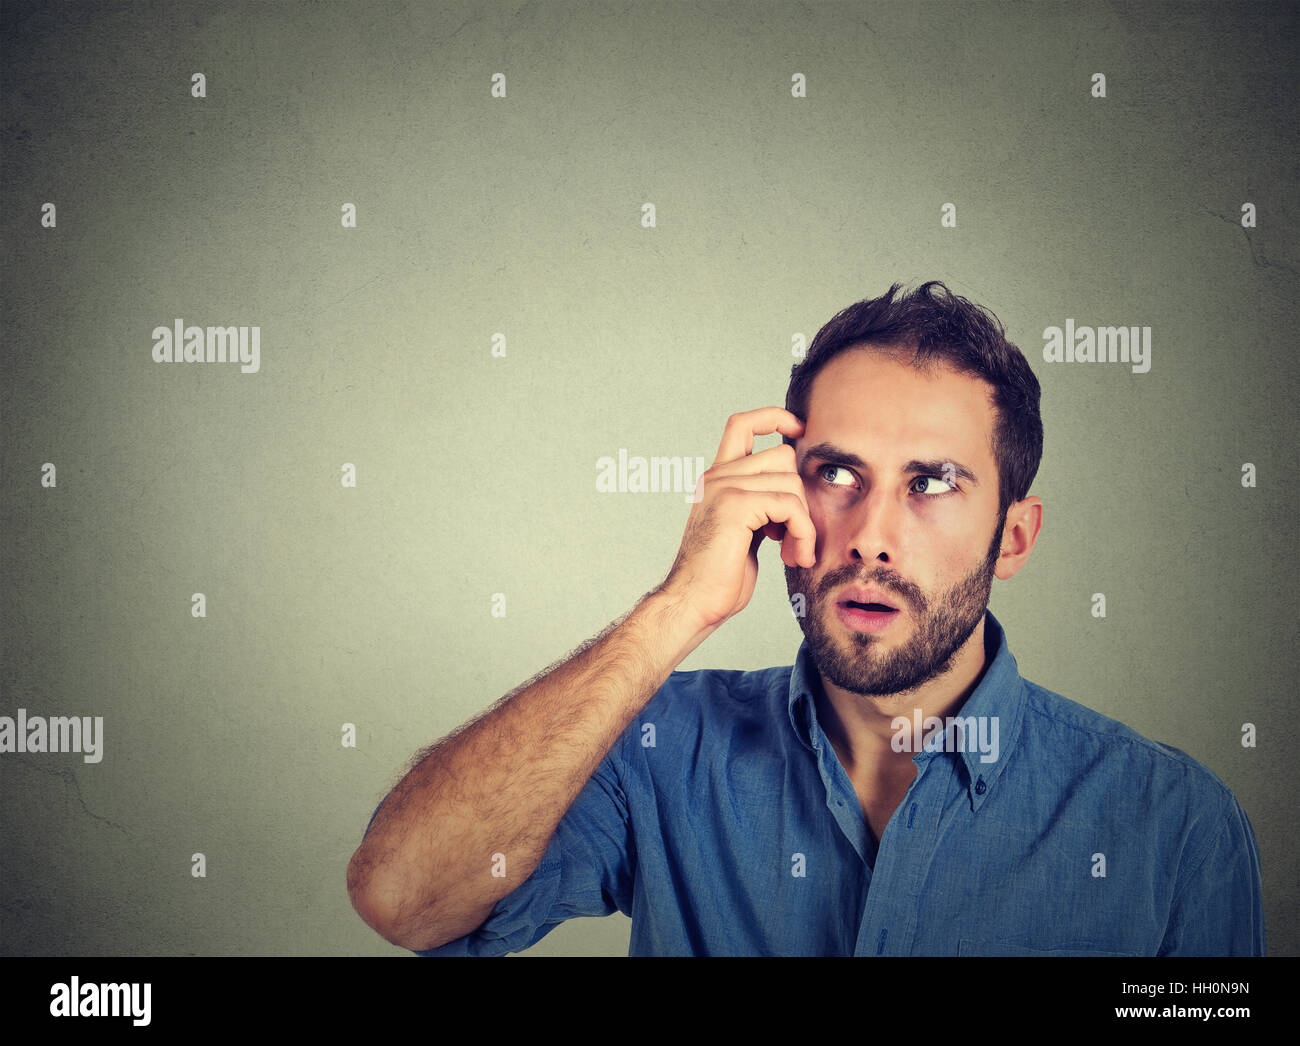 Closeup portrait young man scratching head, thinking deeply about something, looking up, isolated on grey wall background. Stock Photo